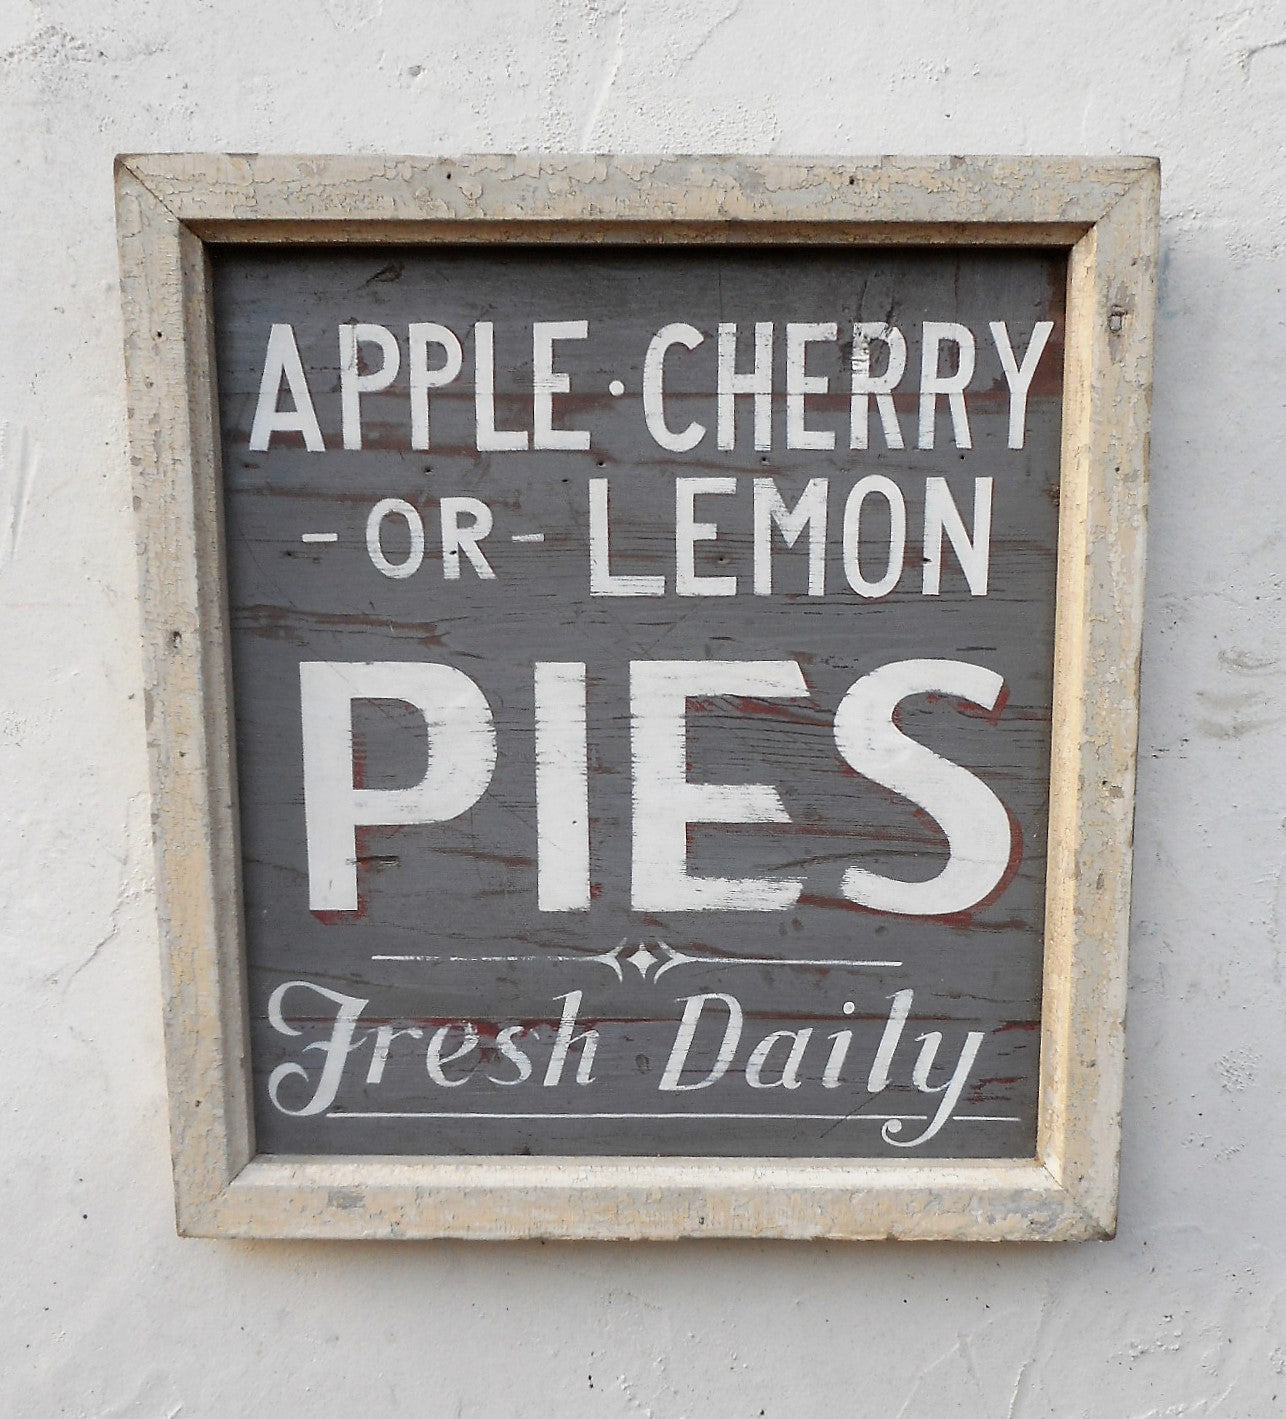 Pies Fresh Daily